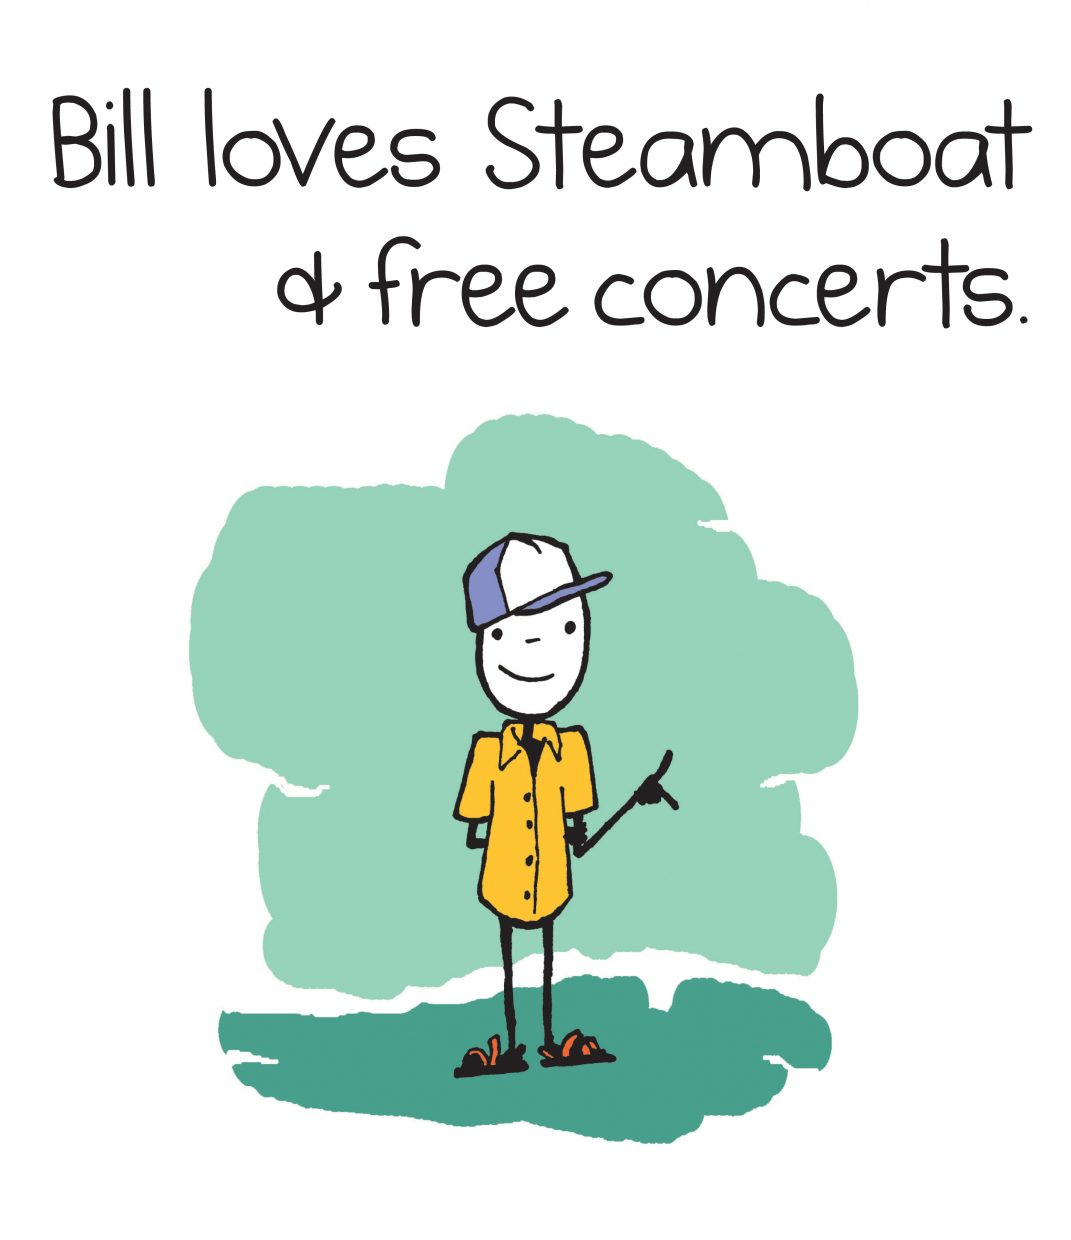 Bill loves Steamboat and free concerts.